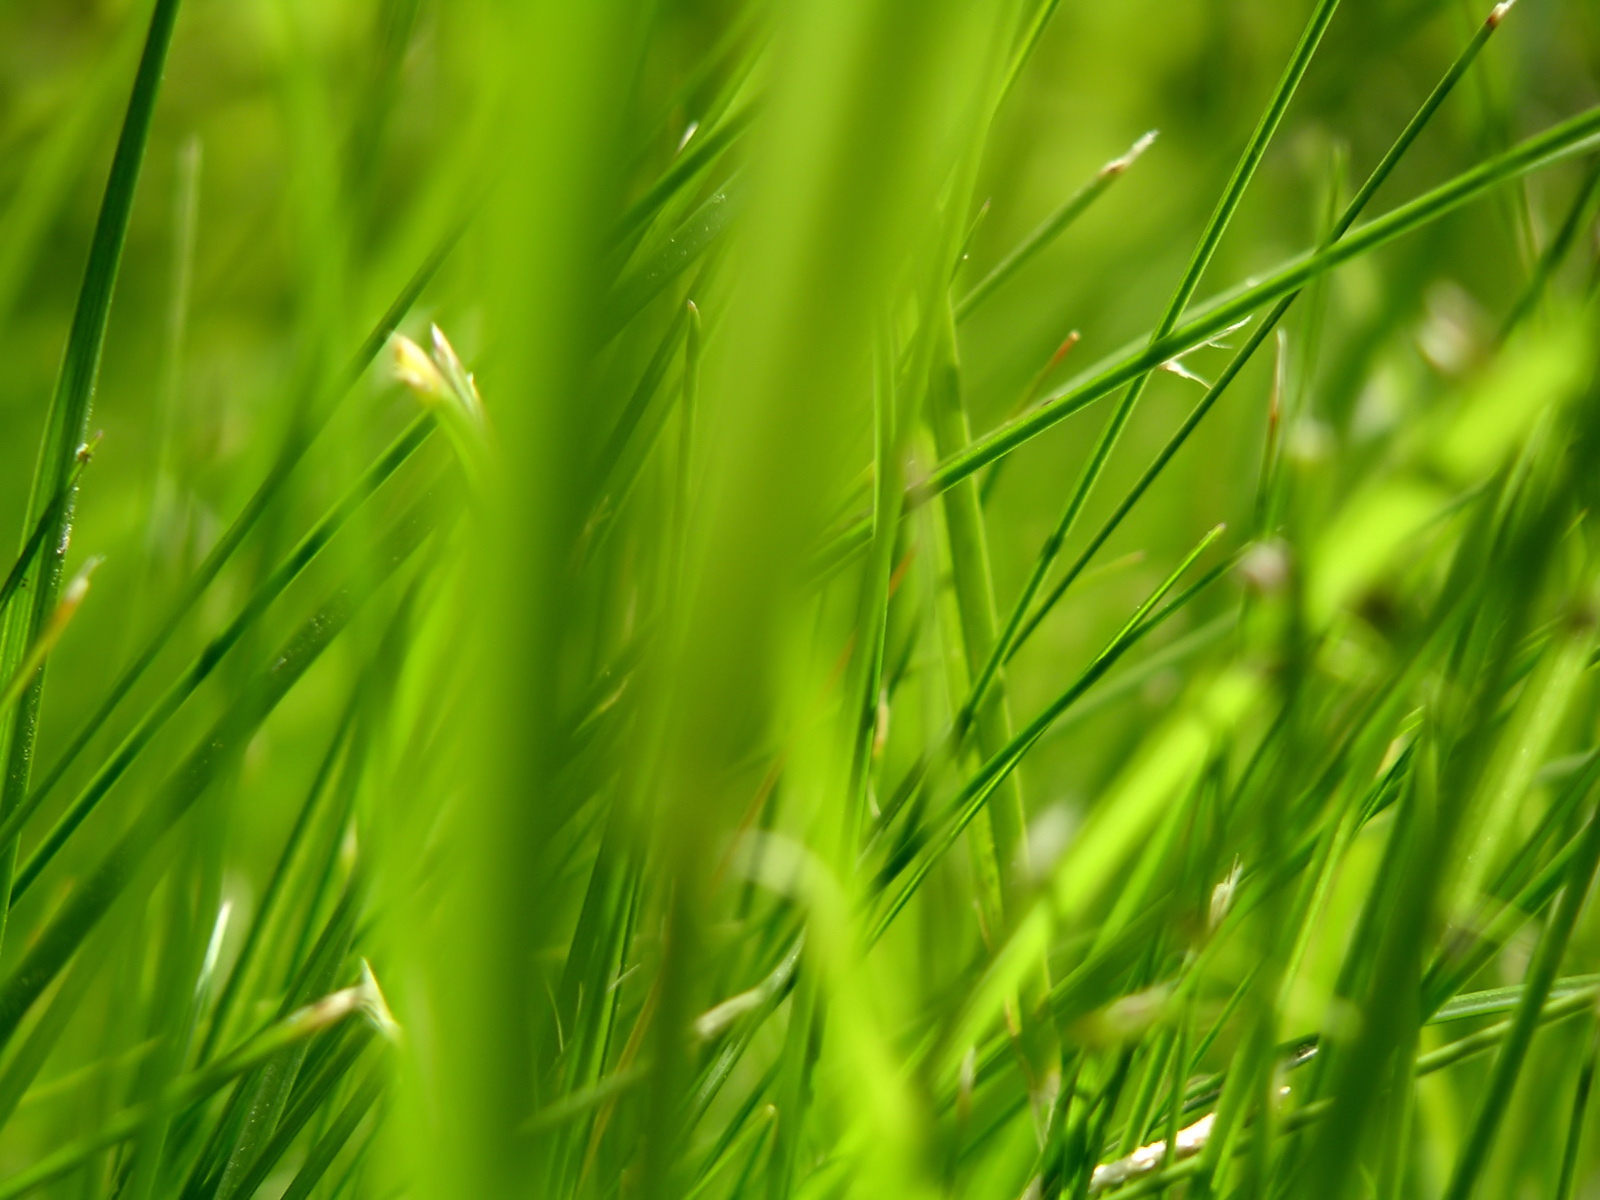 Green series of high-definition 10983